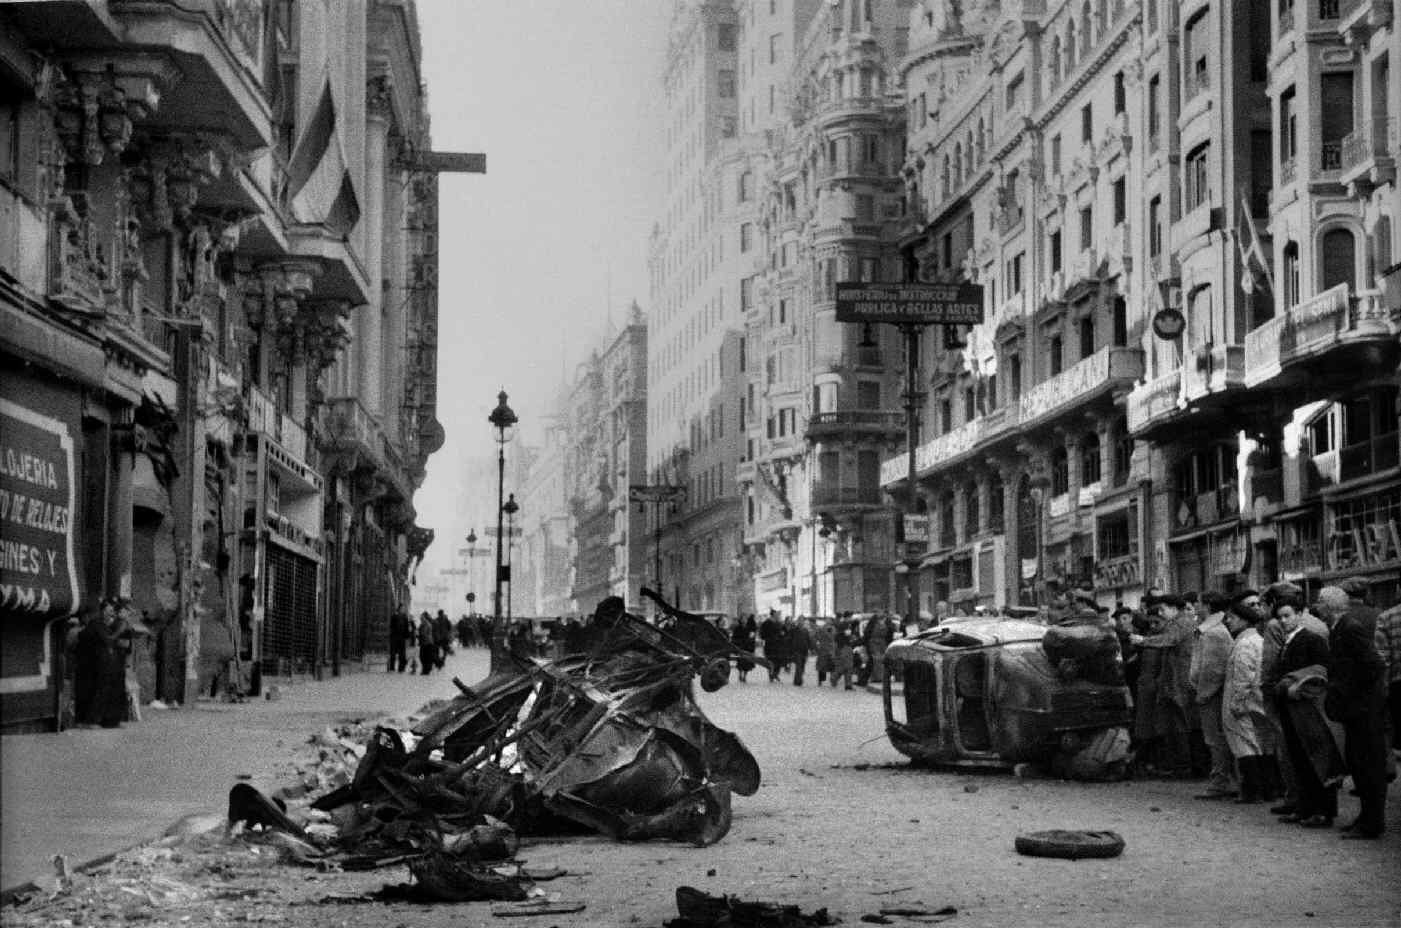 GRAN VIA AND ROAD TO CASTELLON: Two short plays